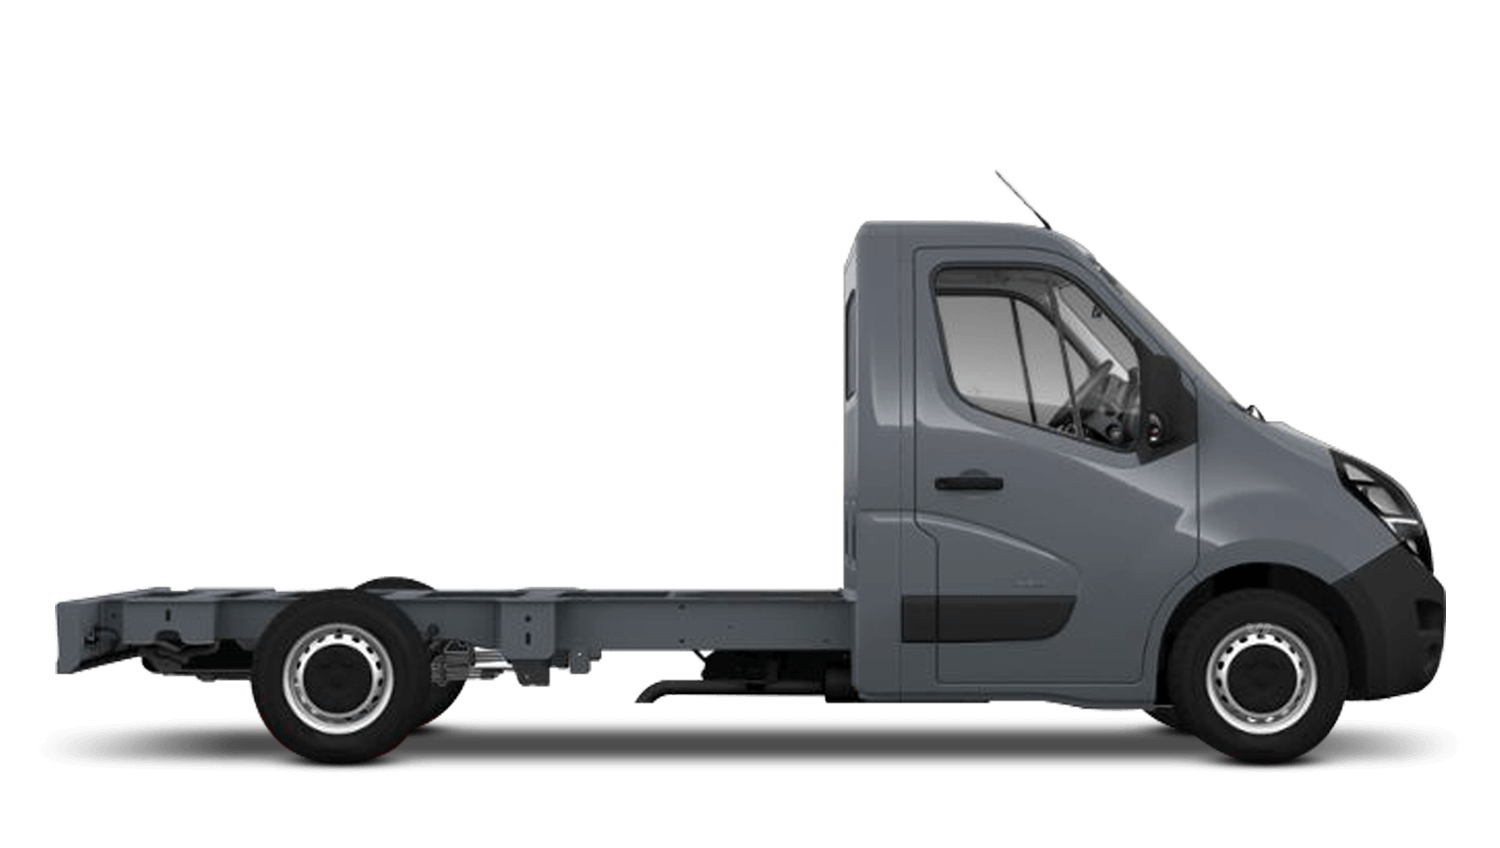 Slate Grey (Solid) New Vauxhall Movano Conversions